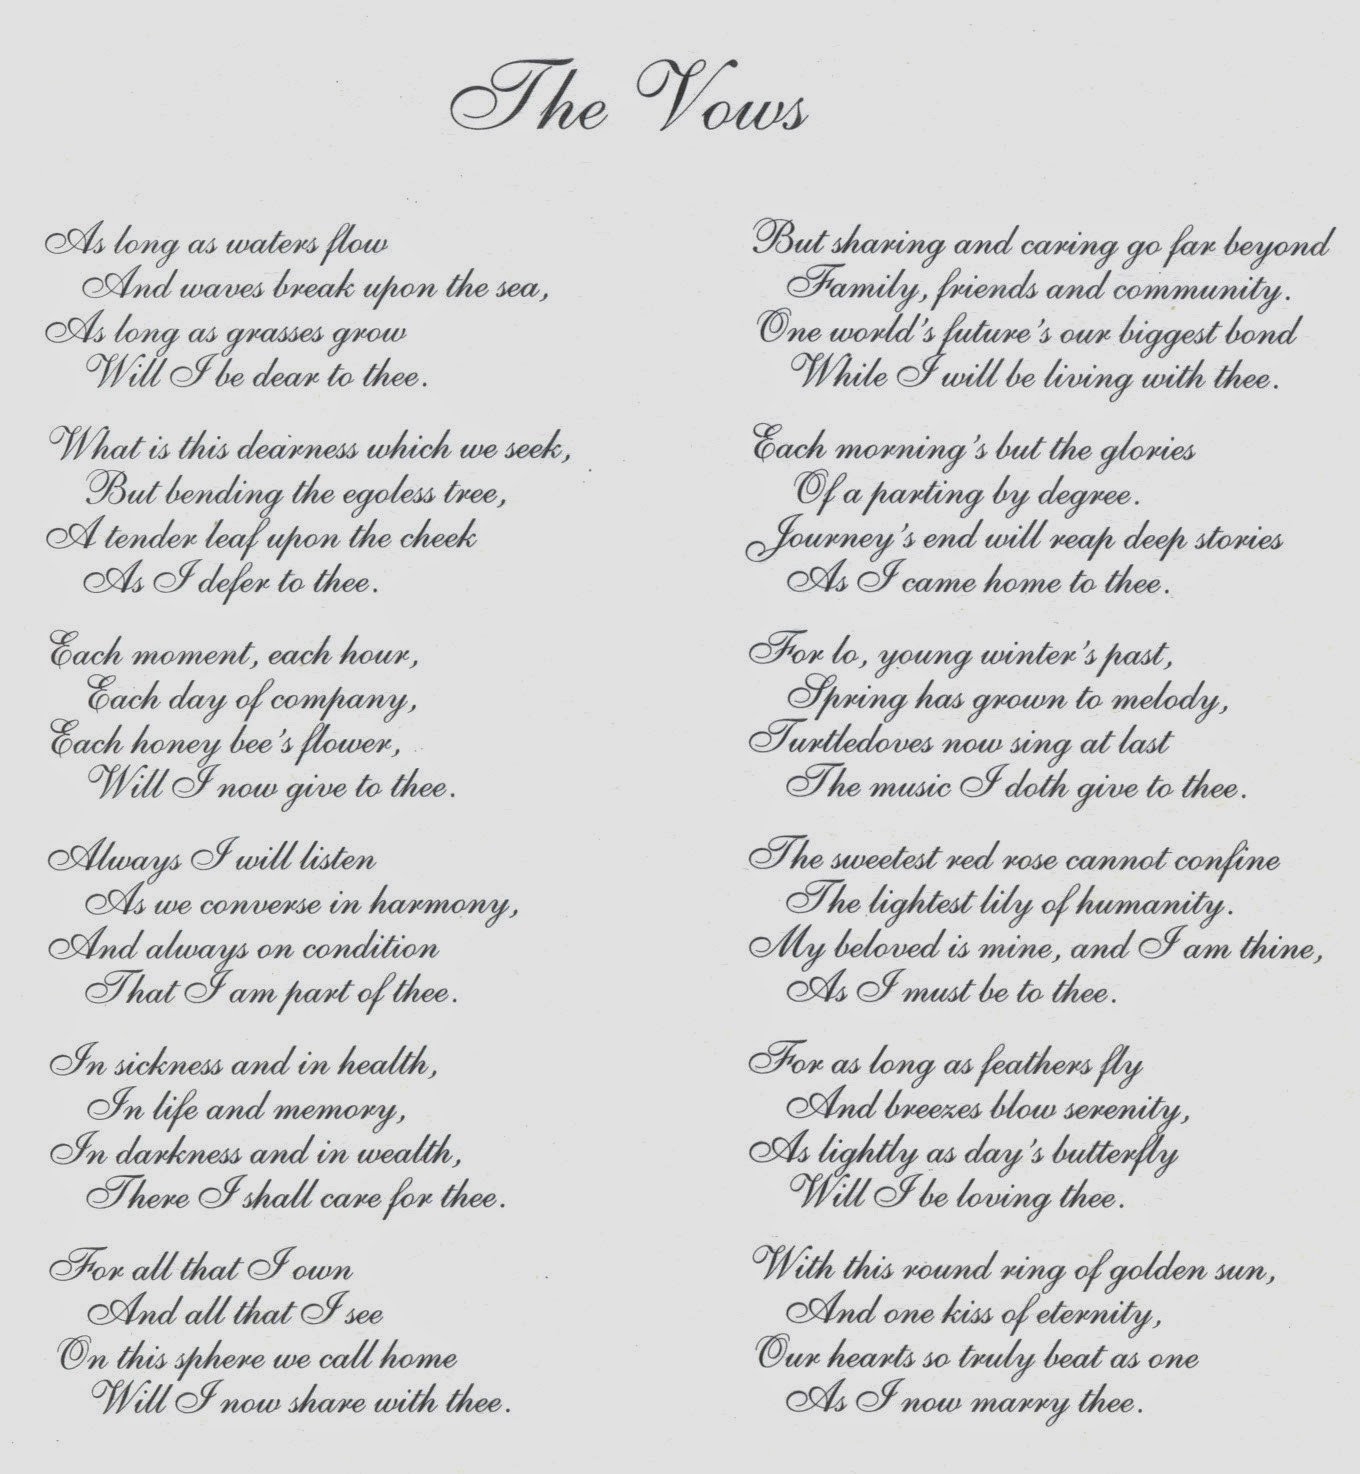 Wedding Vows For Him Funny  Others Beautiful Wedding Vows Samples Ideas — Salondegas